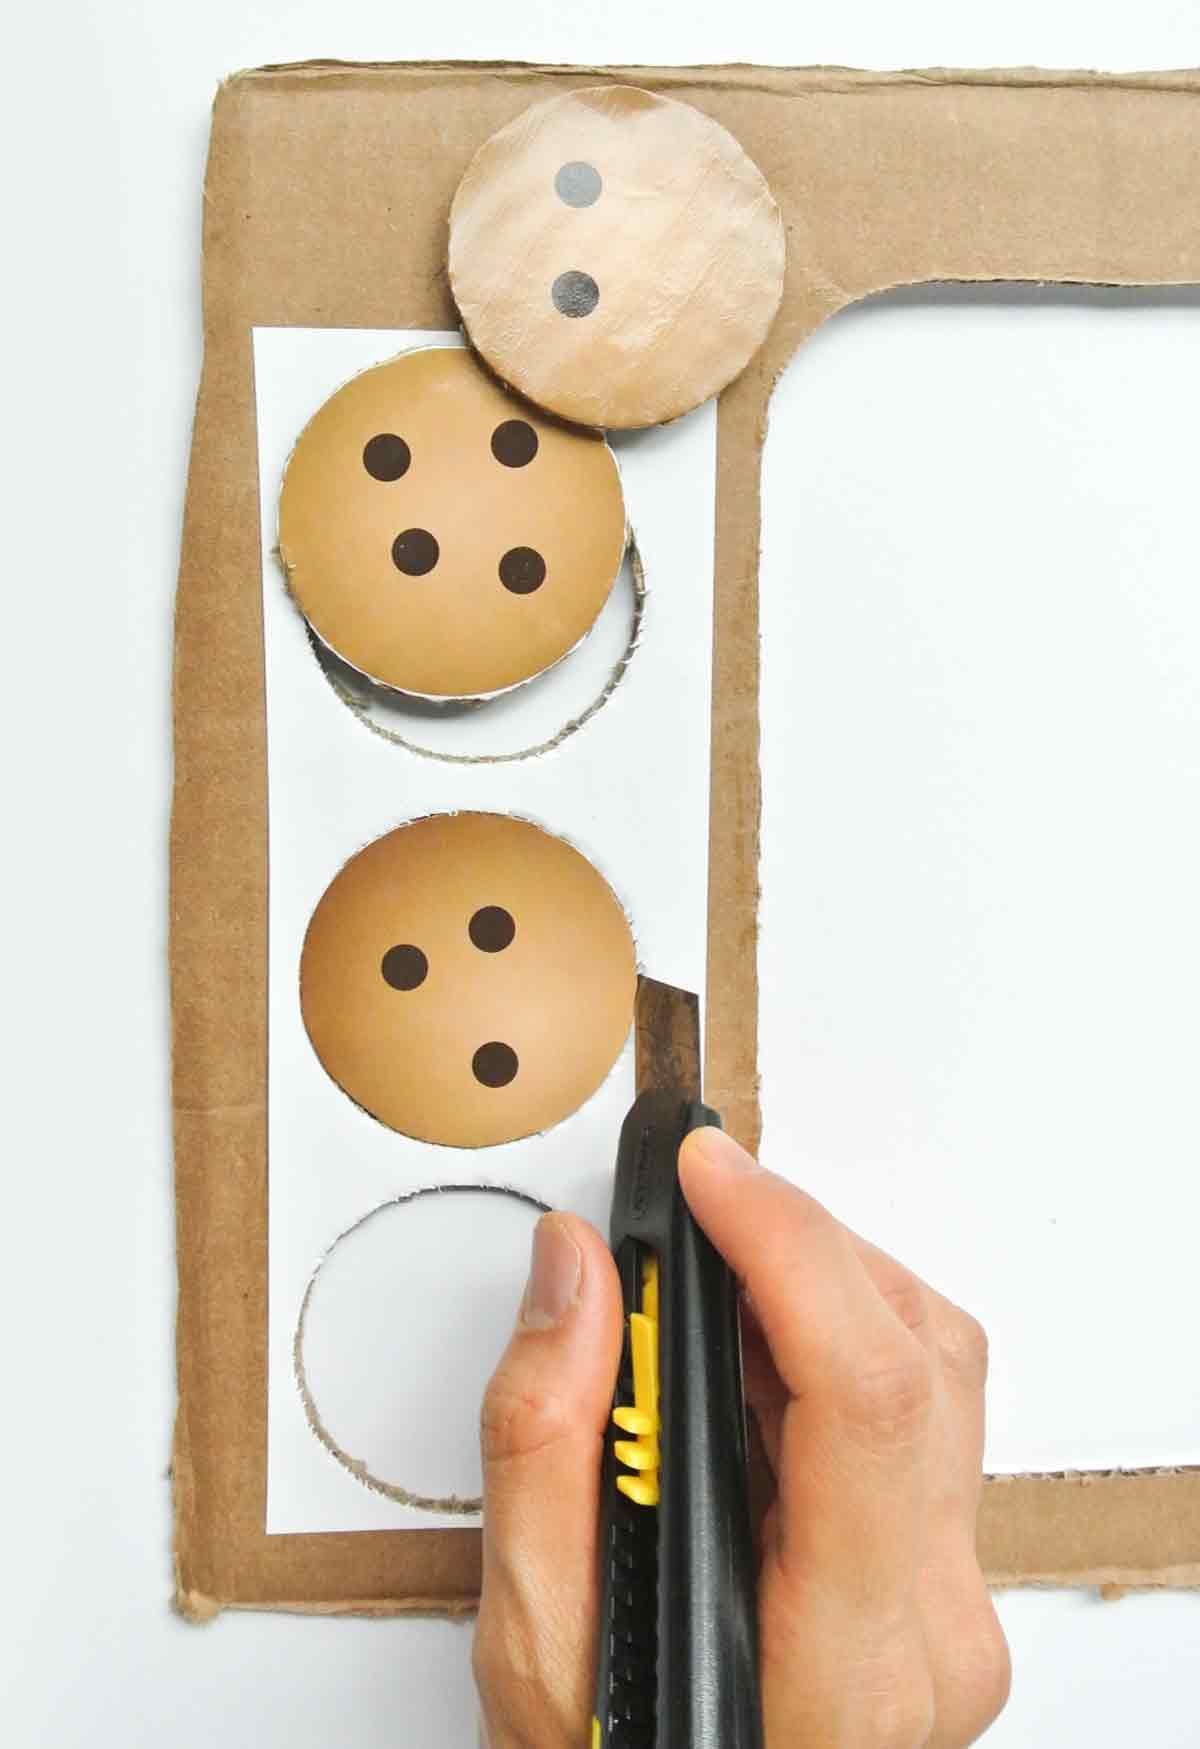 Cutting out cardboard chocolate chip cookies with x-acto knife